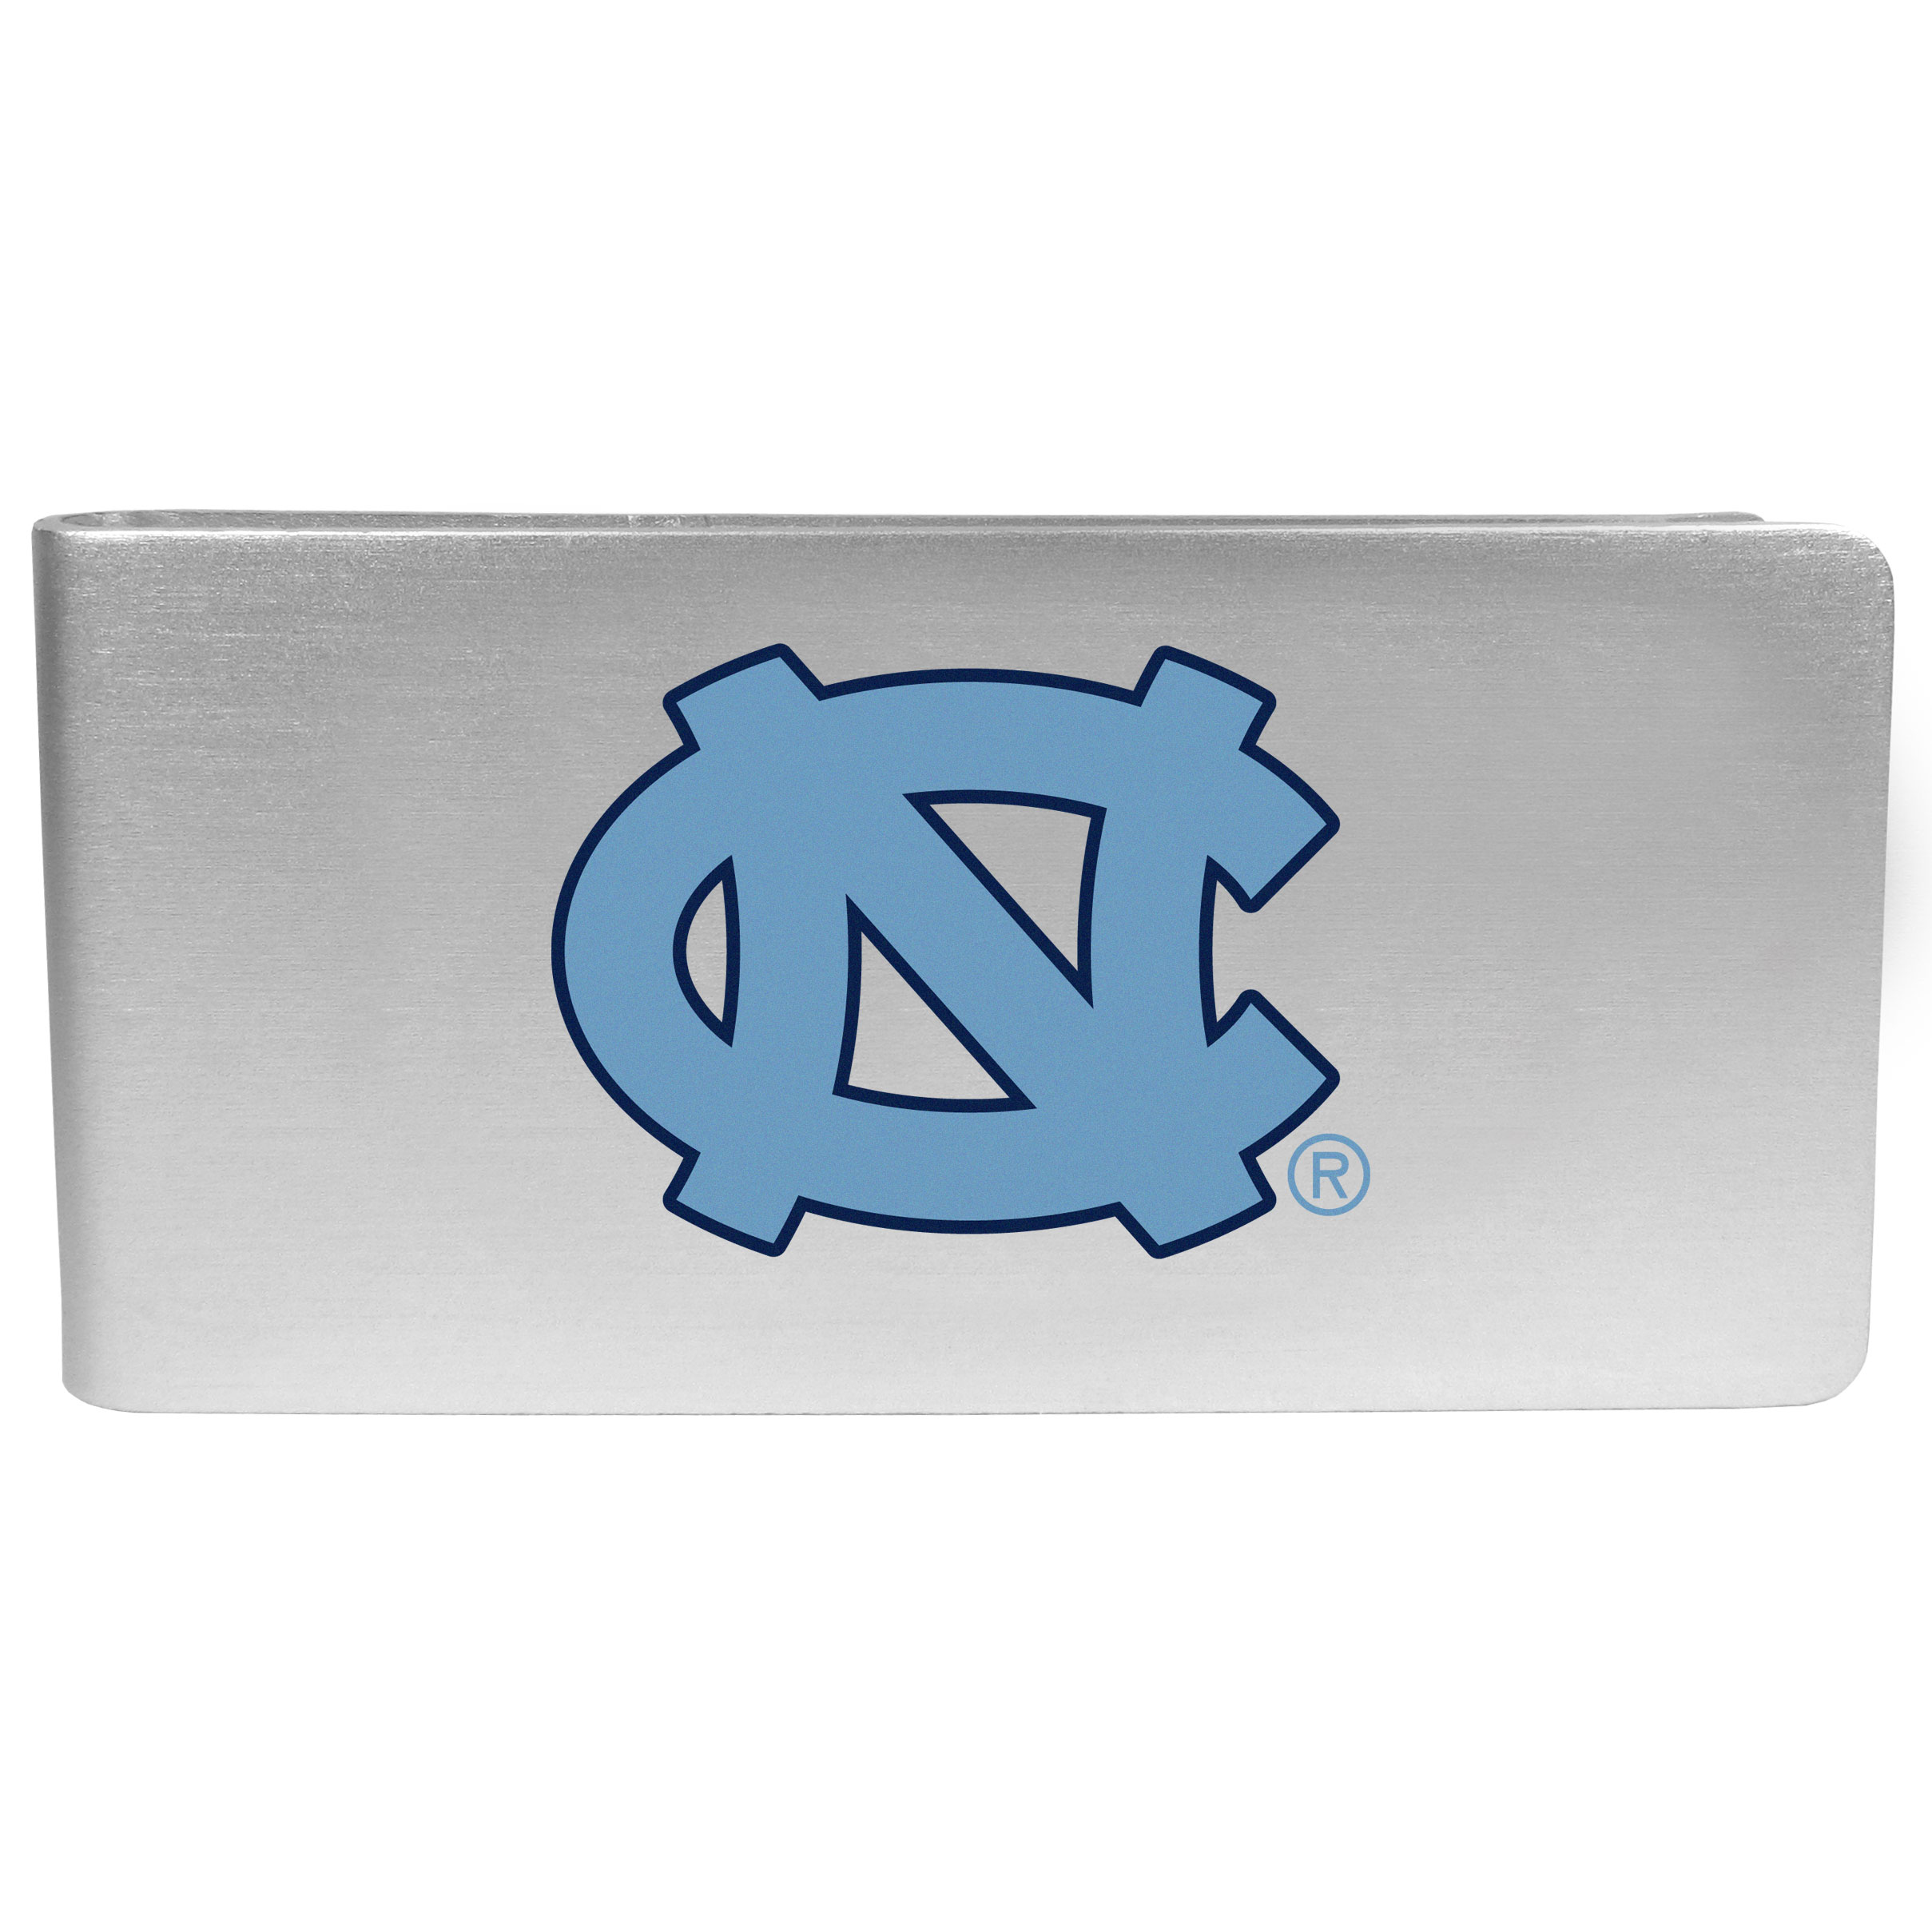 N. Carolina Tar Heels Logo Money Clip - Our brushed metal money clip has classic style and functionality. The attractive clip features the N. Carolina Tar Heels logo expertly printed on front.